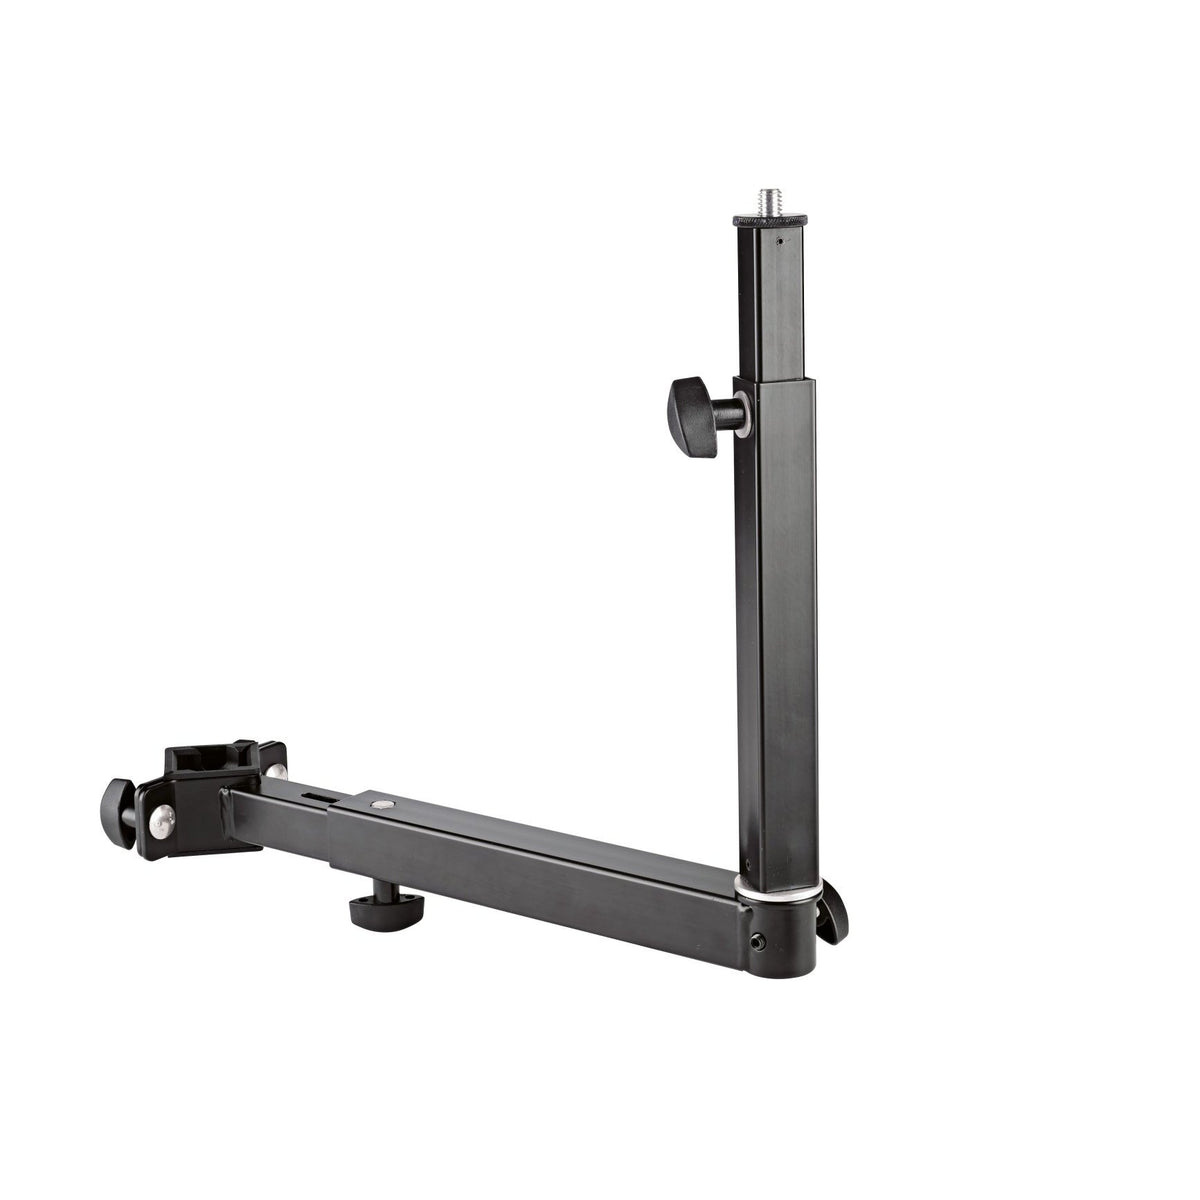 König & Meyer - 18807 Topline Universal Holder for Keyboard Stand/Table-Instrument Stand-König & Meyer-Music Elements